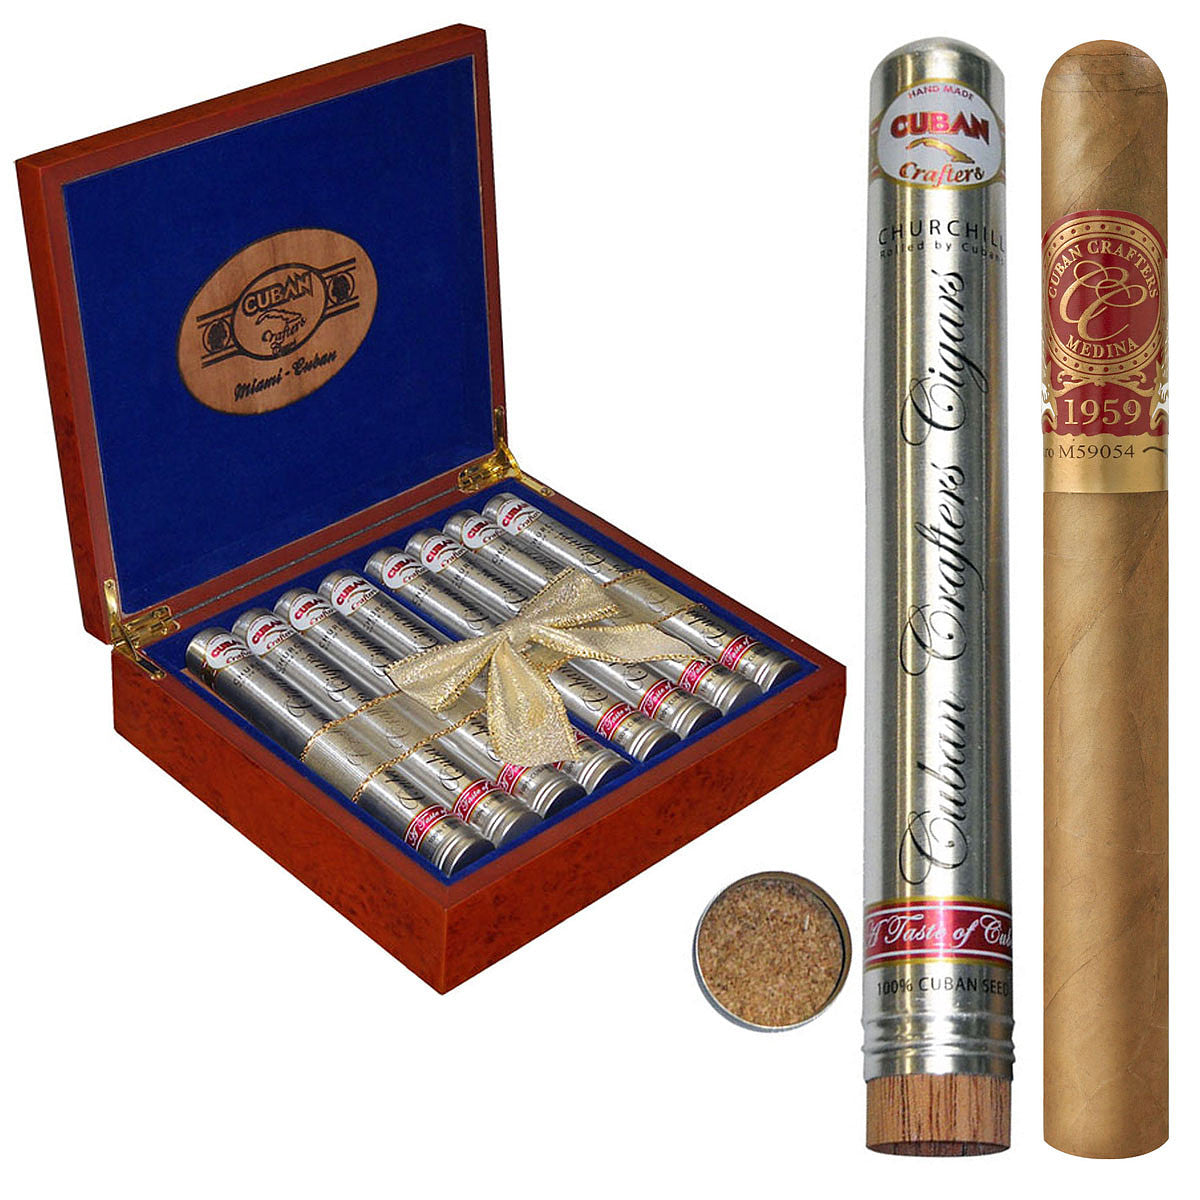 Medina 1959 Miami Edition Churchill Tube Humidor 7 X 50 Box of 16 - Cigar boulevard